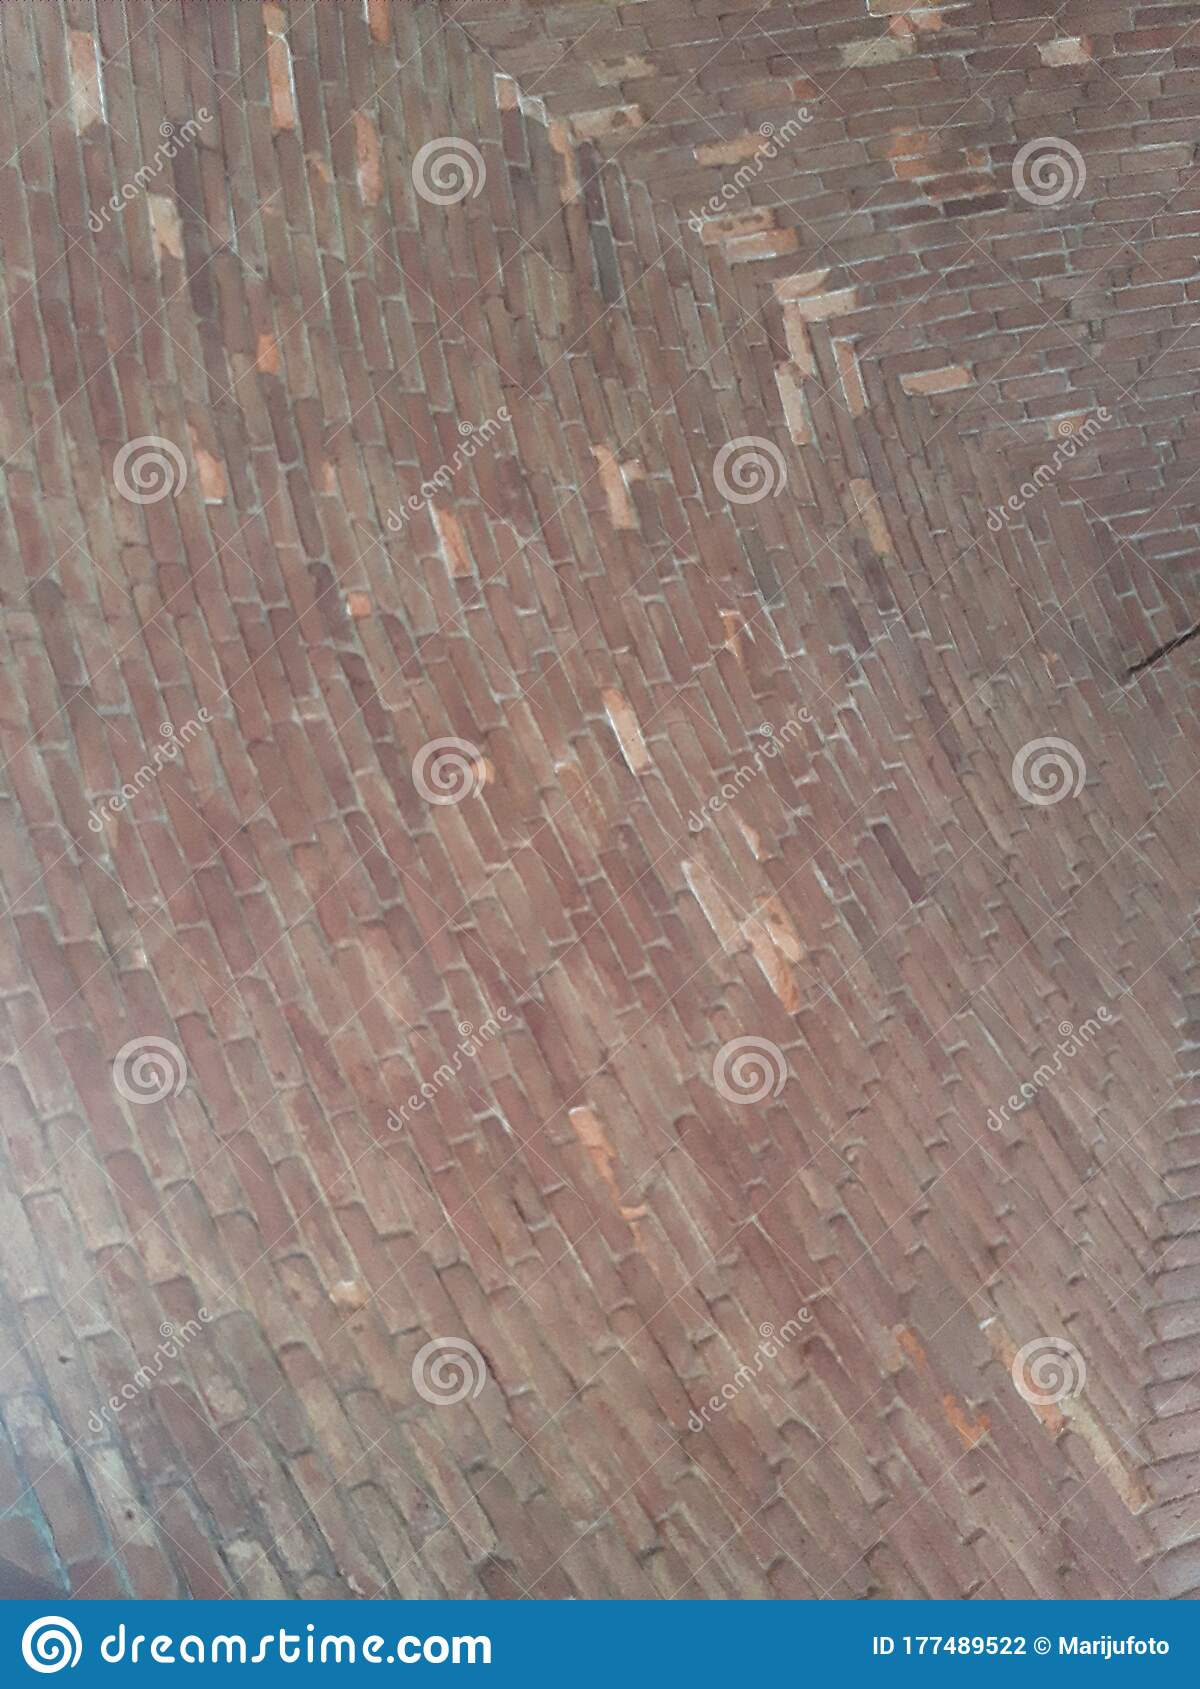 Surfaces Of Different Shades For Aesthetic And Attractive Projects Stock Photo Image Of Abstract Gray 177489522